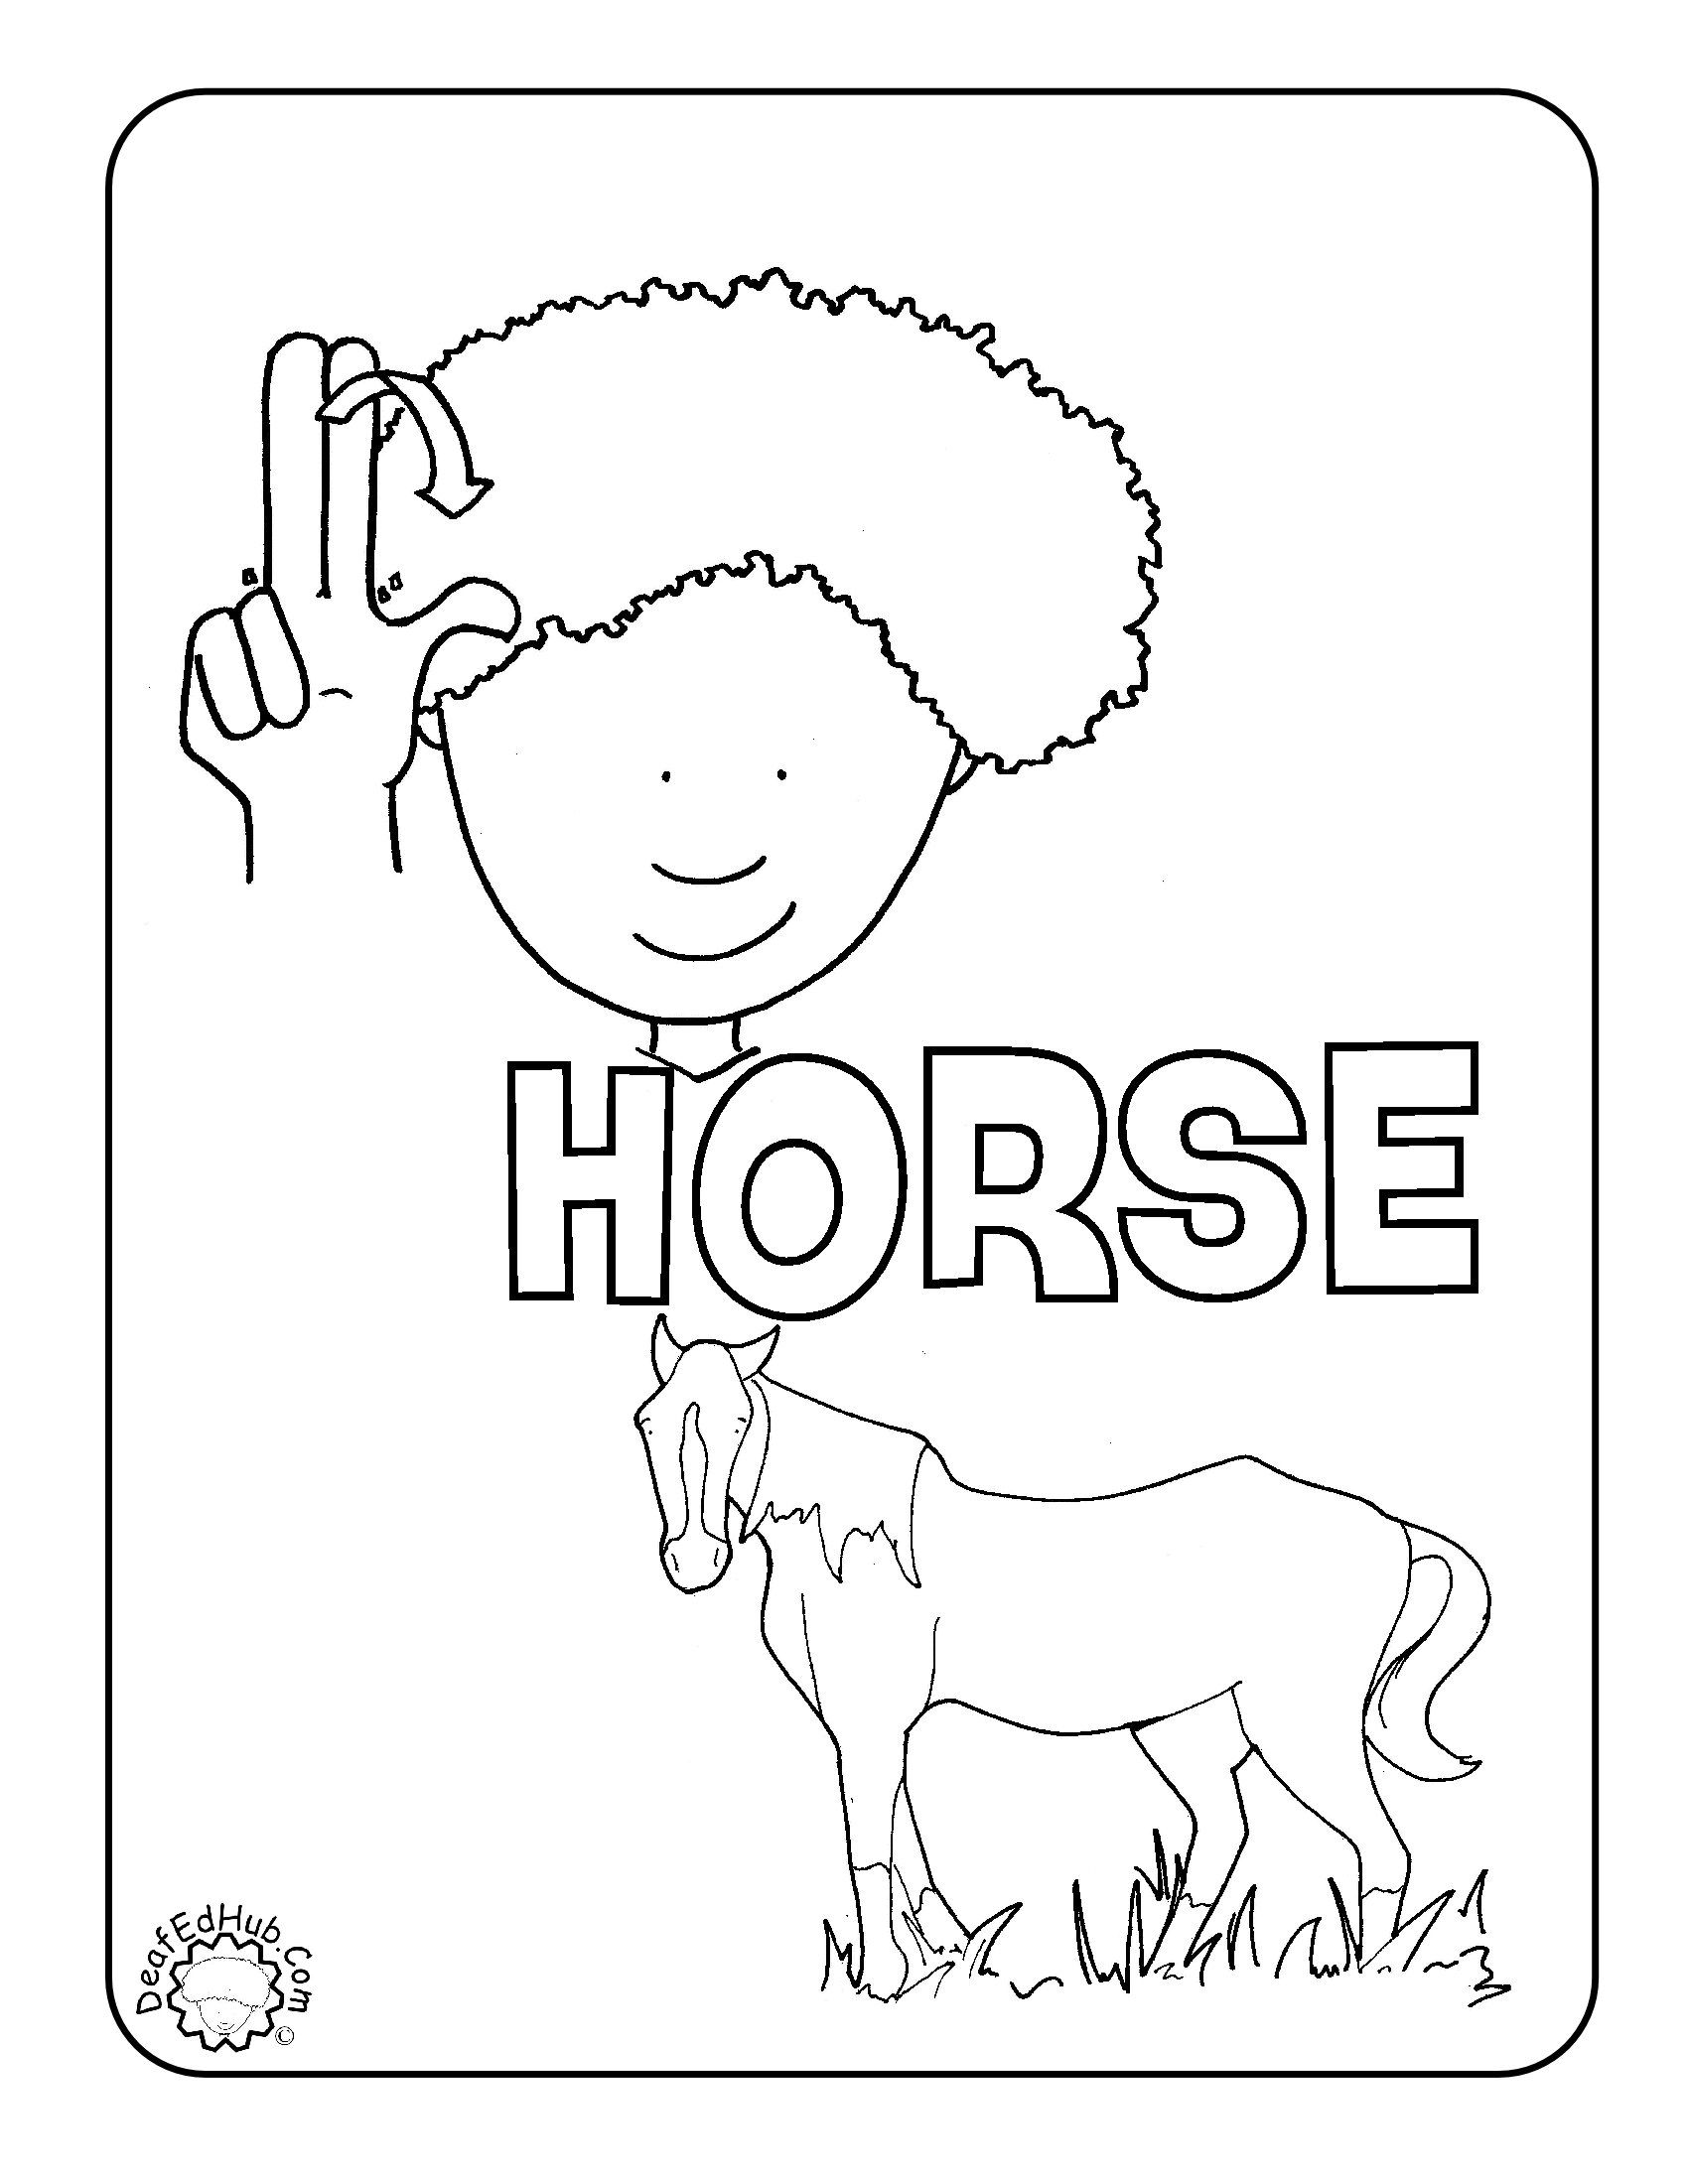 Asl Coloring Page For The Sign Horse I Just Posted 19 More Coloring Pages In American Sign